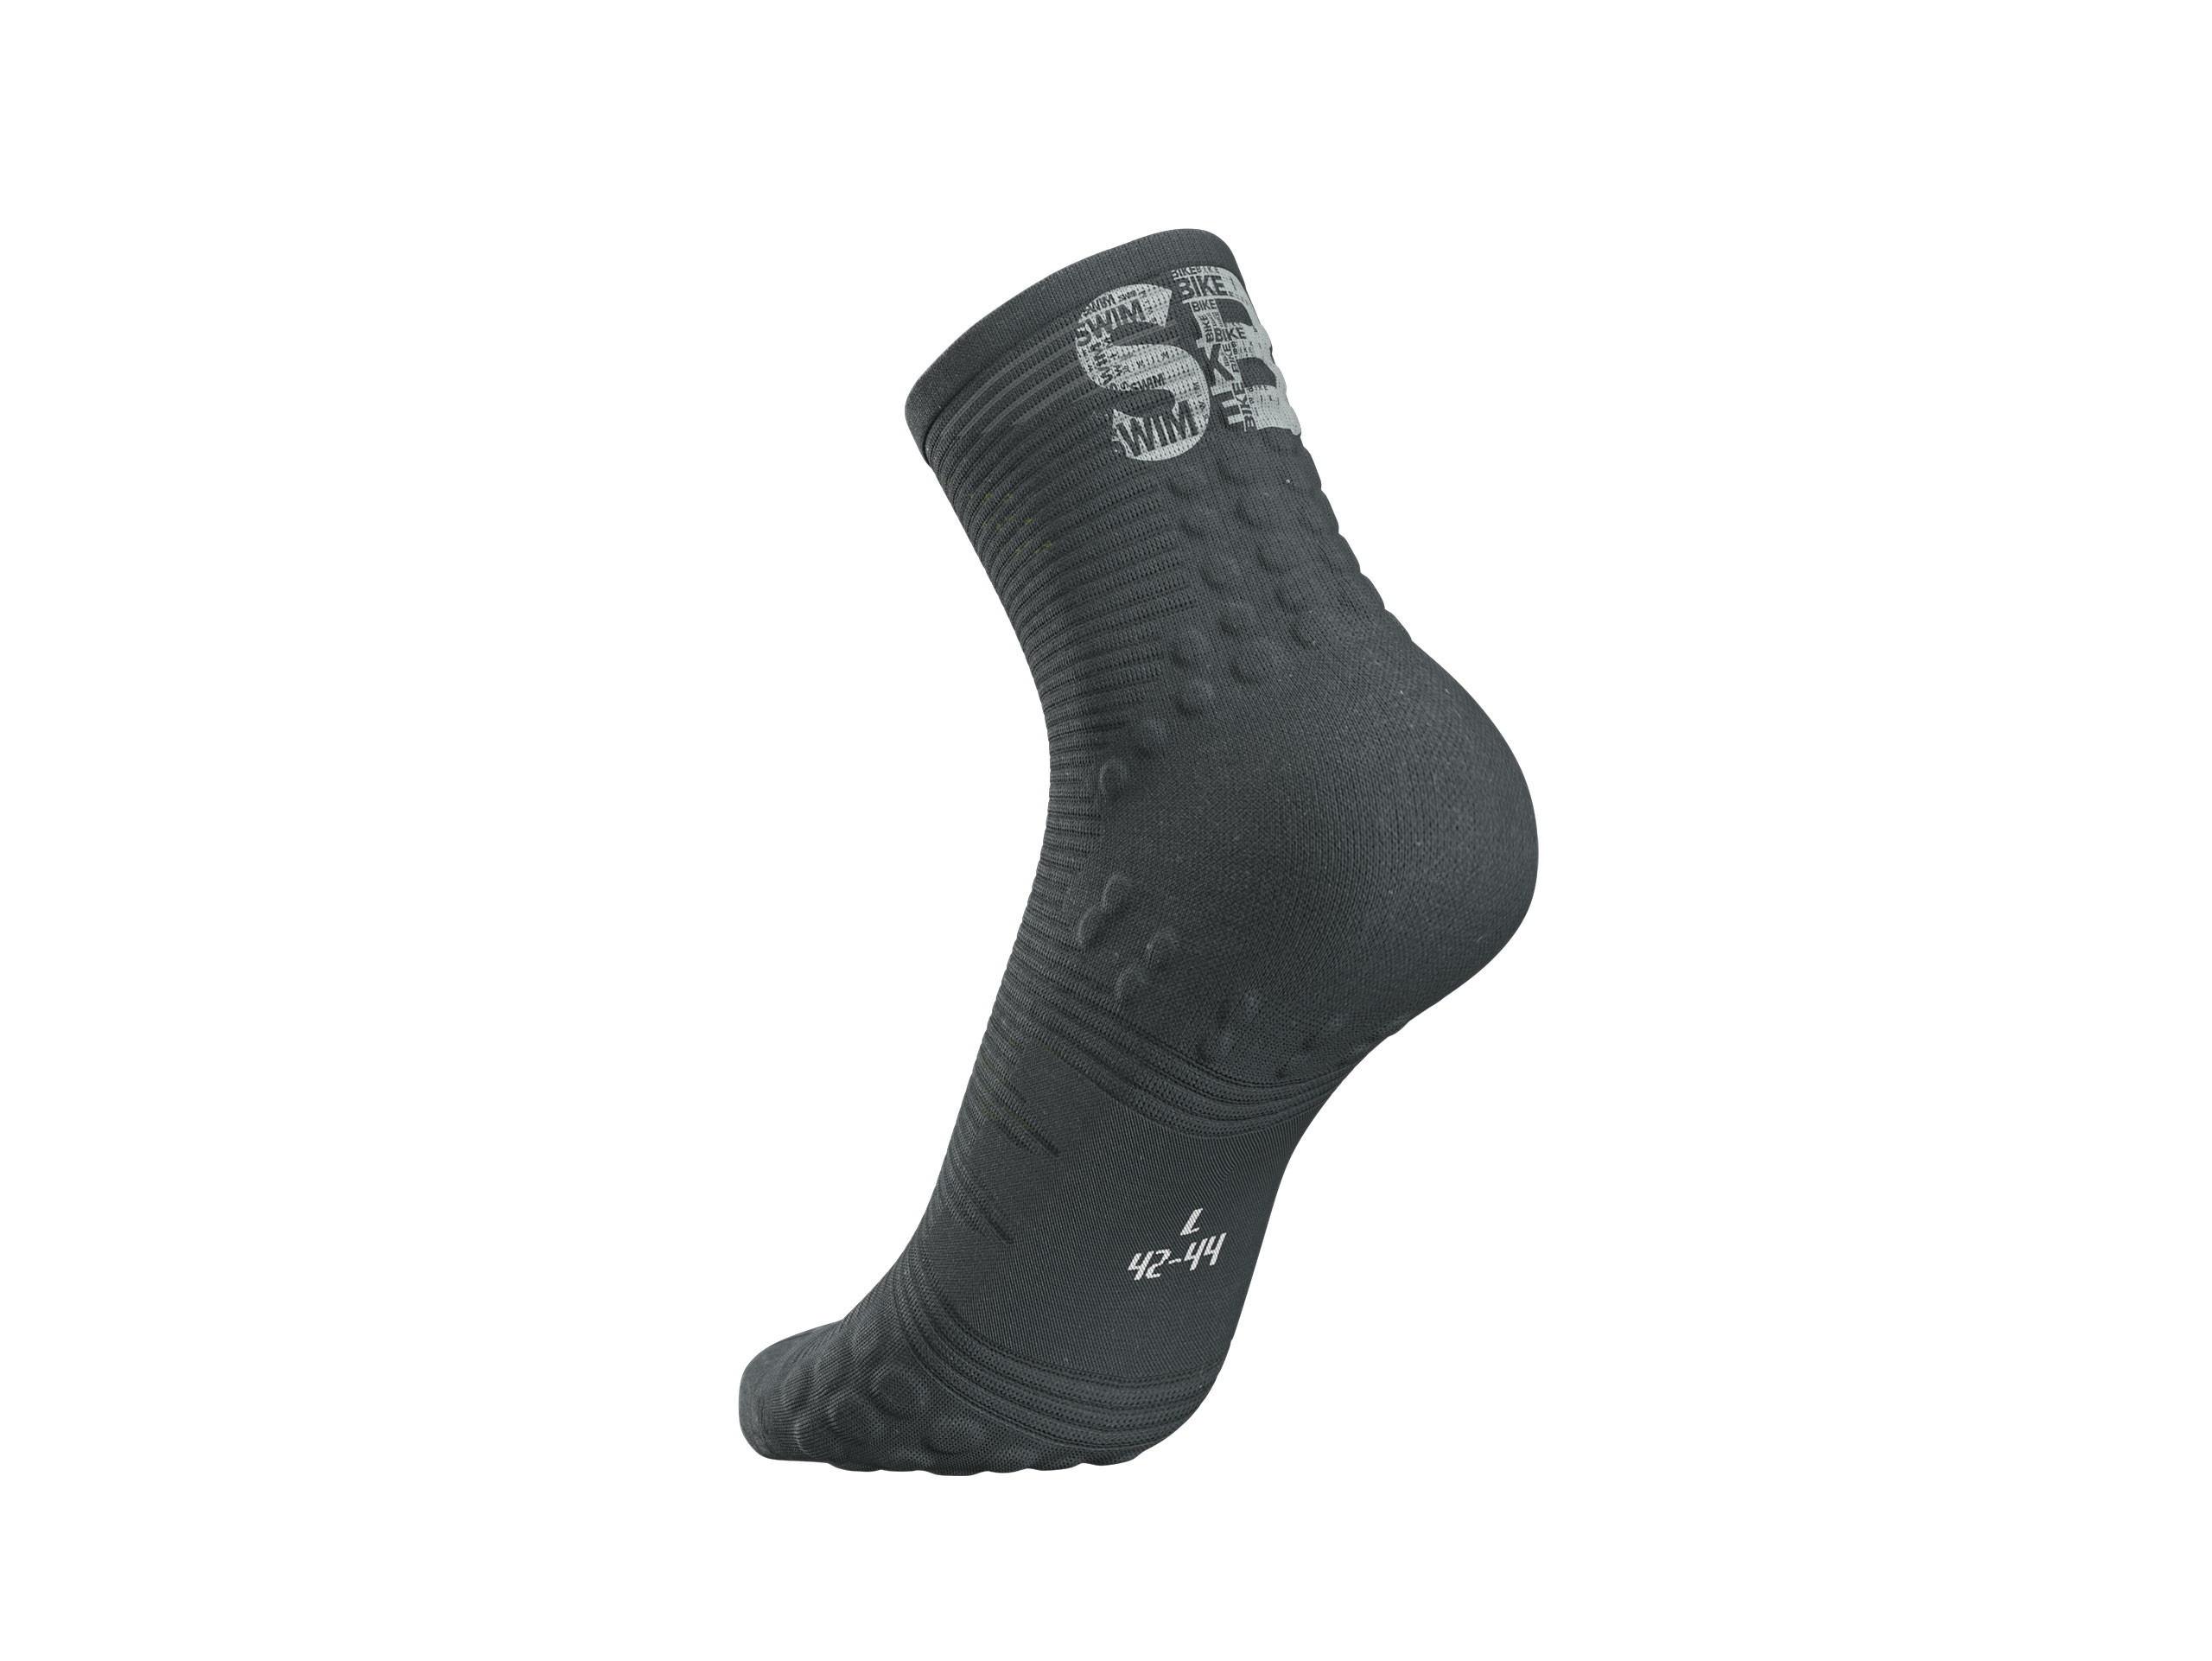 Pro Racing Socks v3.0 Run High - Born To SwimBikeRun 2019